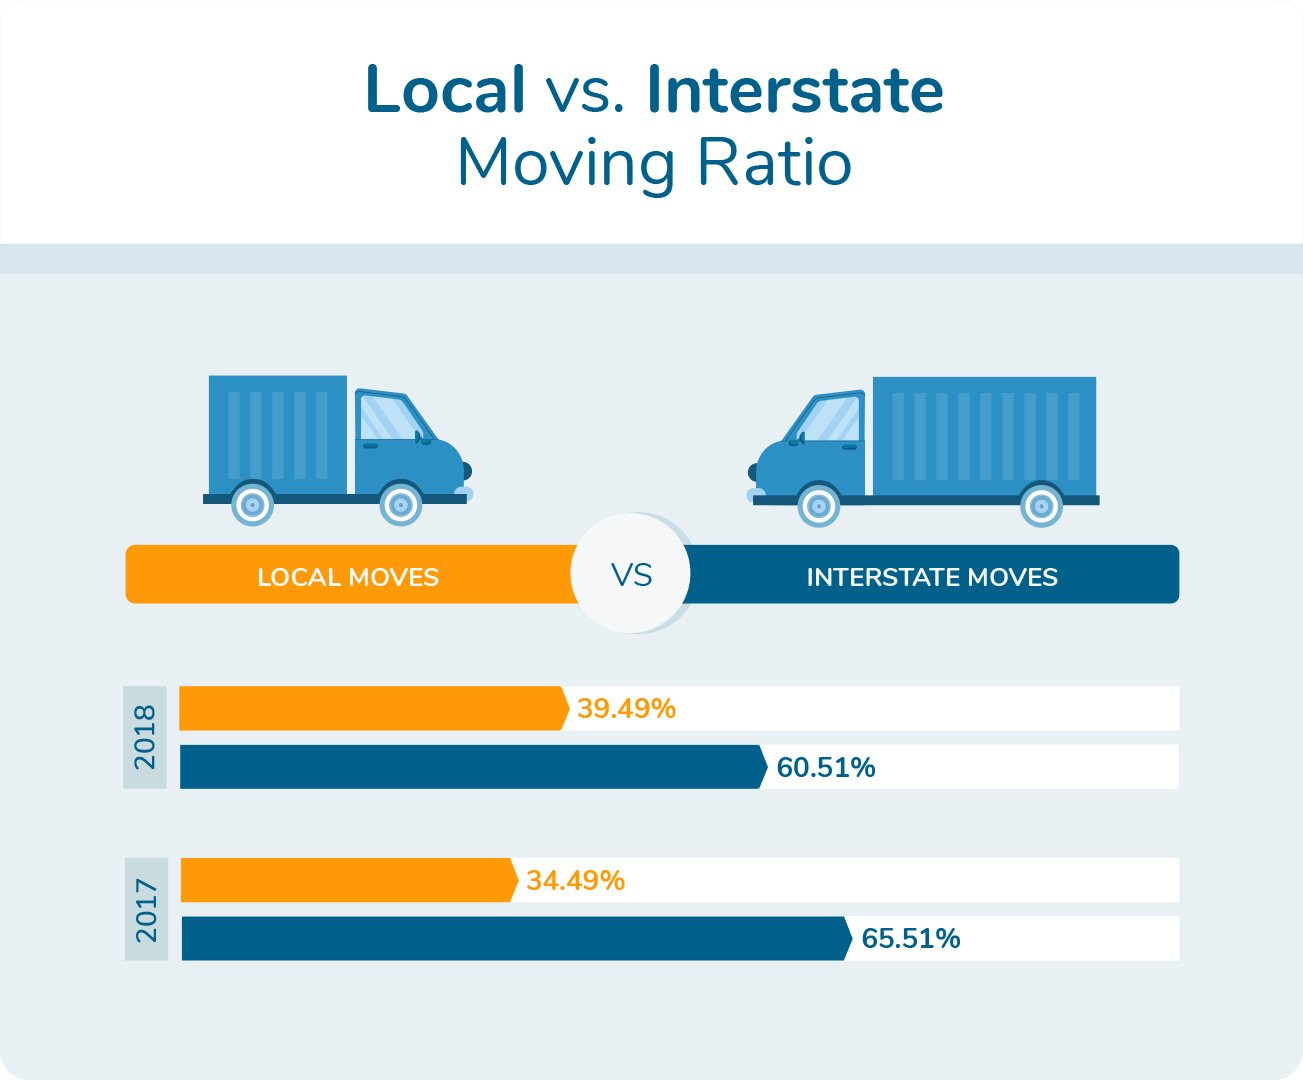 Local vs. Interstate Moving Ratio